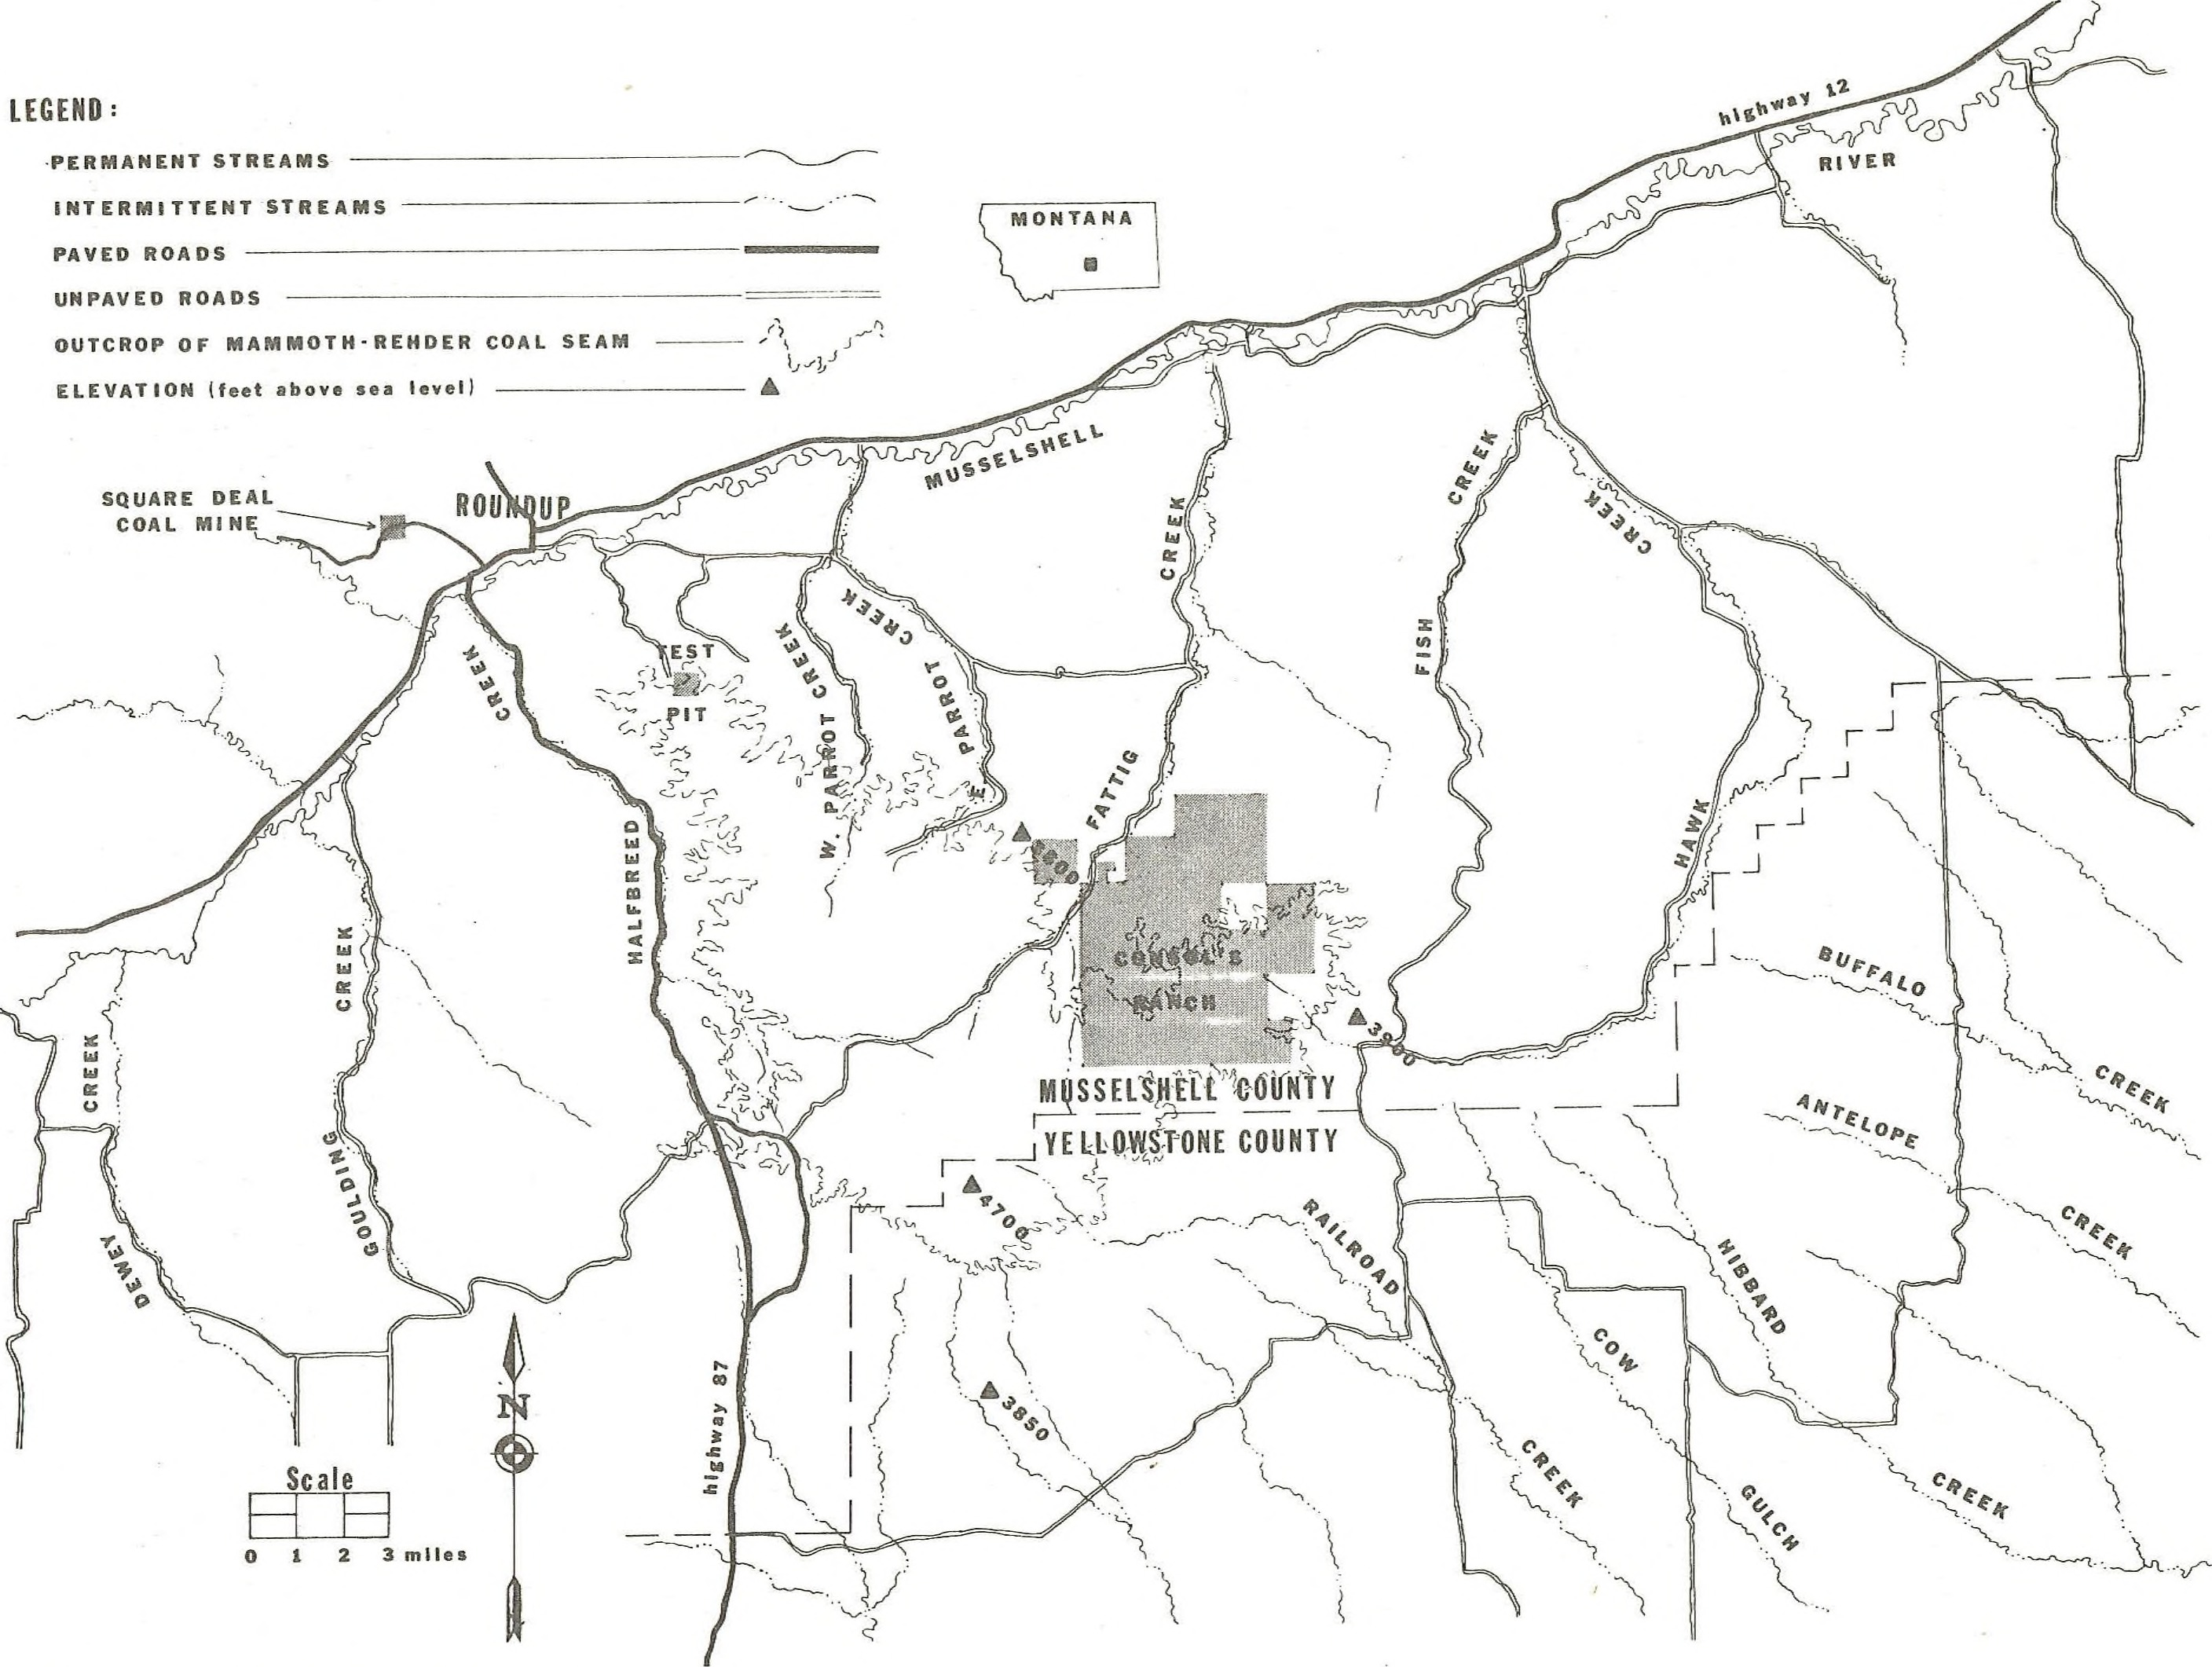 file bull mountains coal field study progress report 1975 Anatomy of a House Diagram file bull mountains coal field study progress report 1975 research conducted by montana department of fish and game environment and information